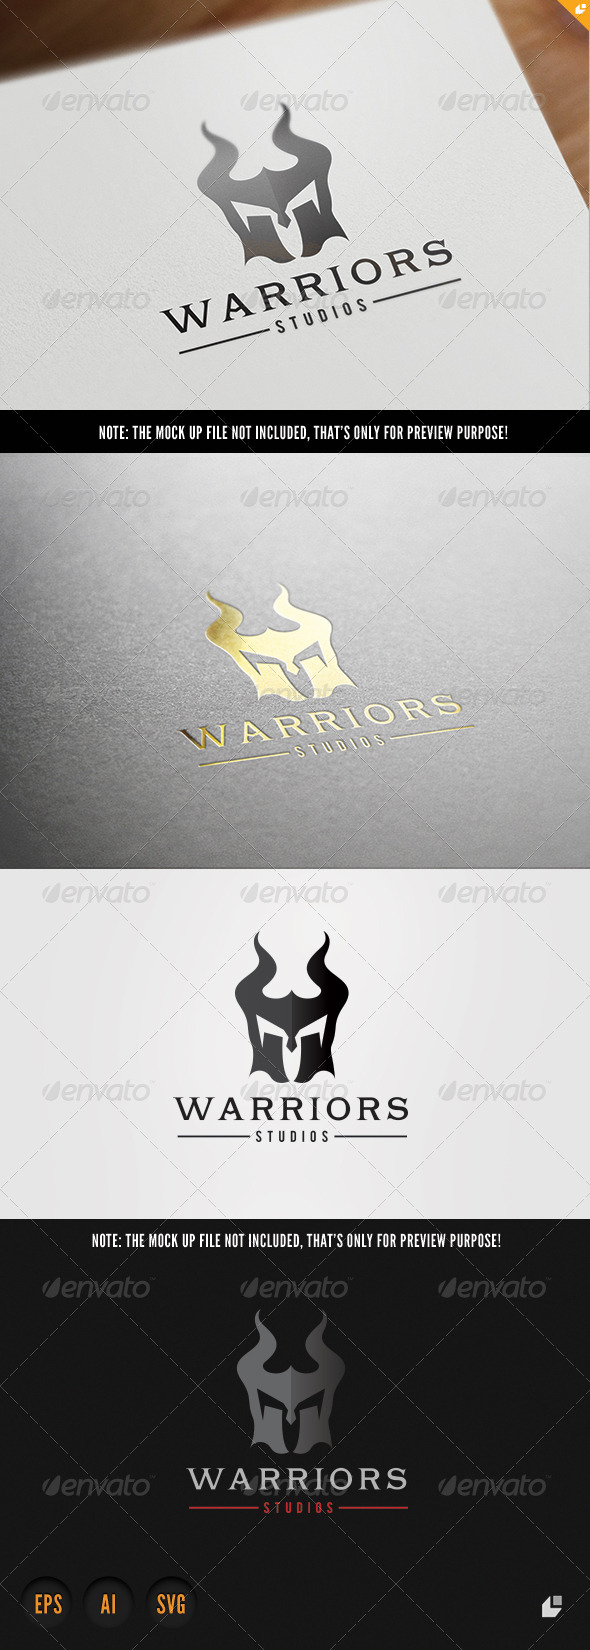 GraphicRiver Warriors Game Studios 8485289